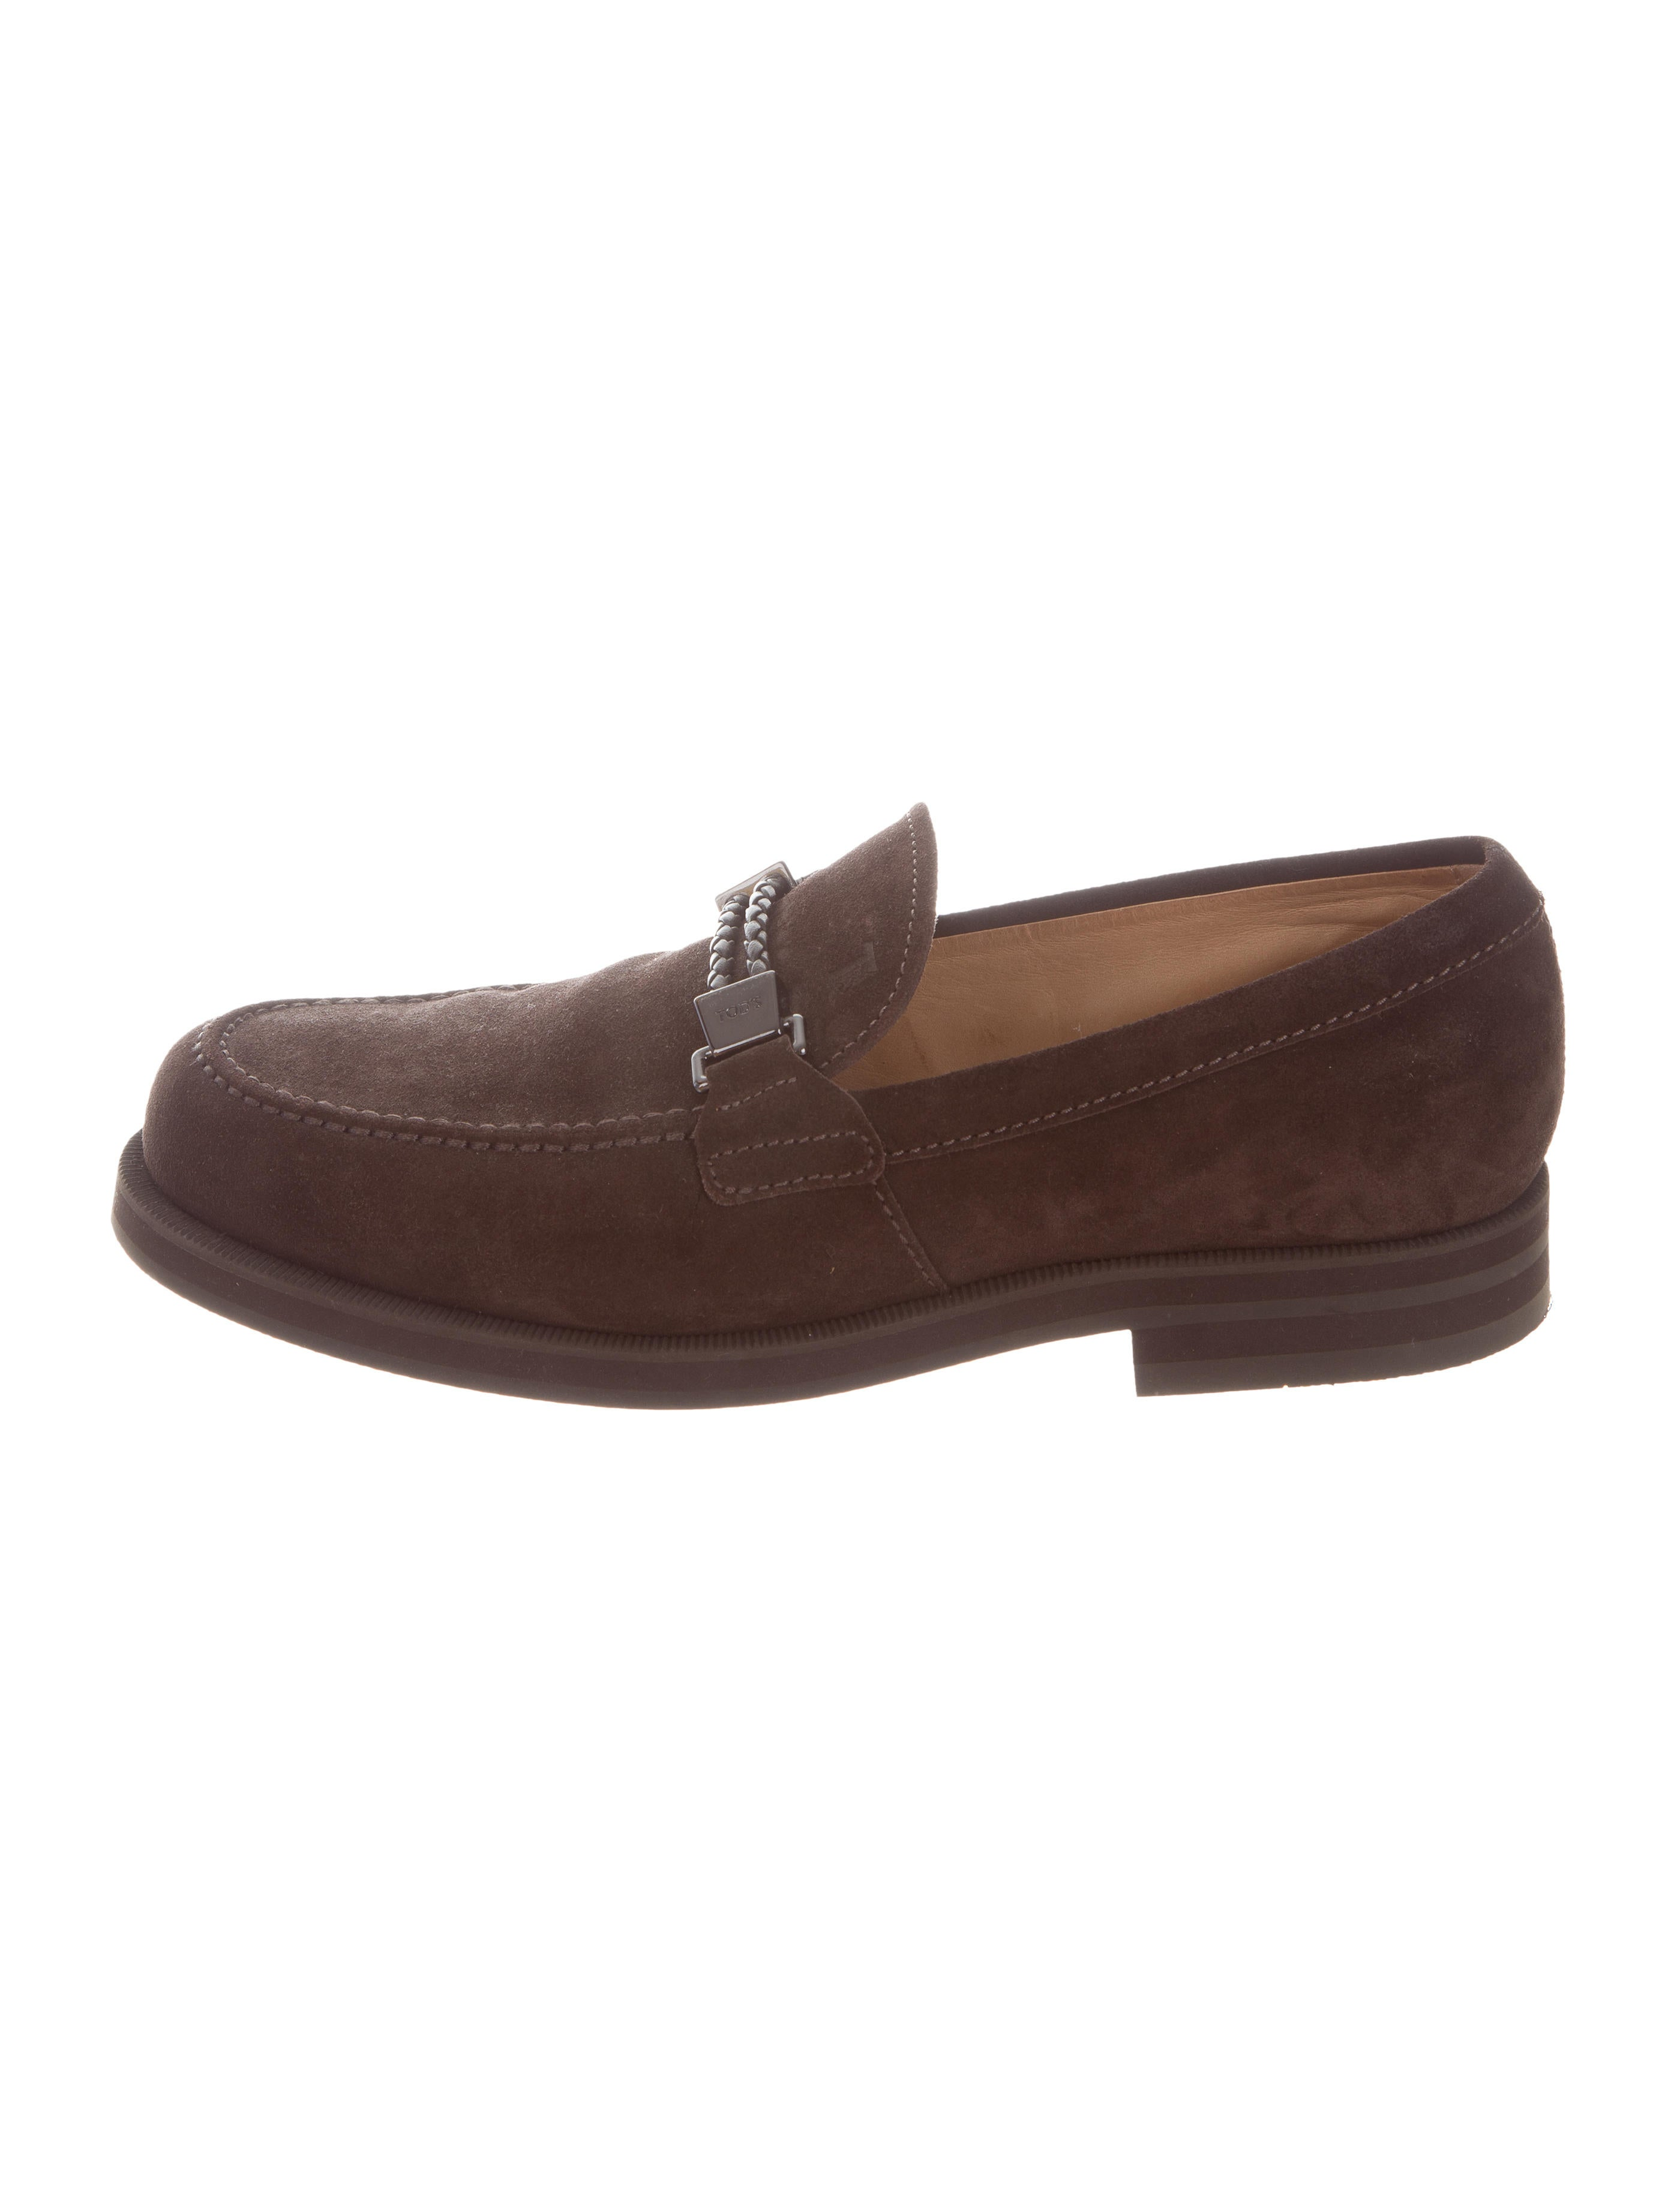 Tod's Leather Penny Loafers w/ Tags sale 2015 cheap sale shop 4kL44bEPK